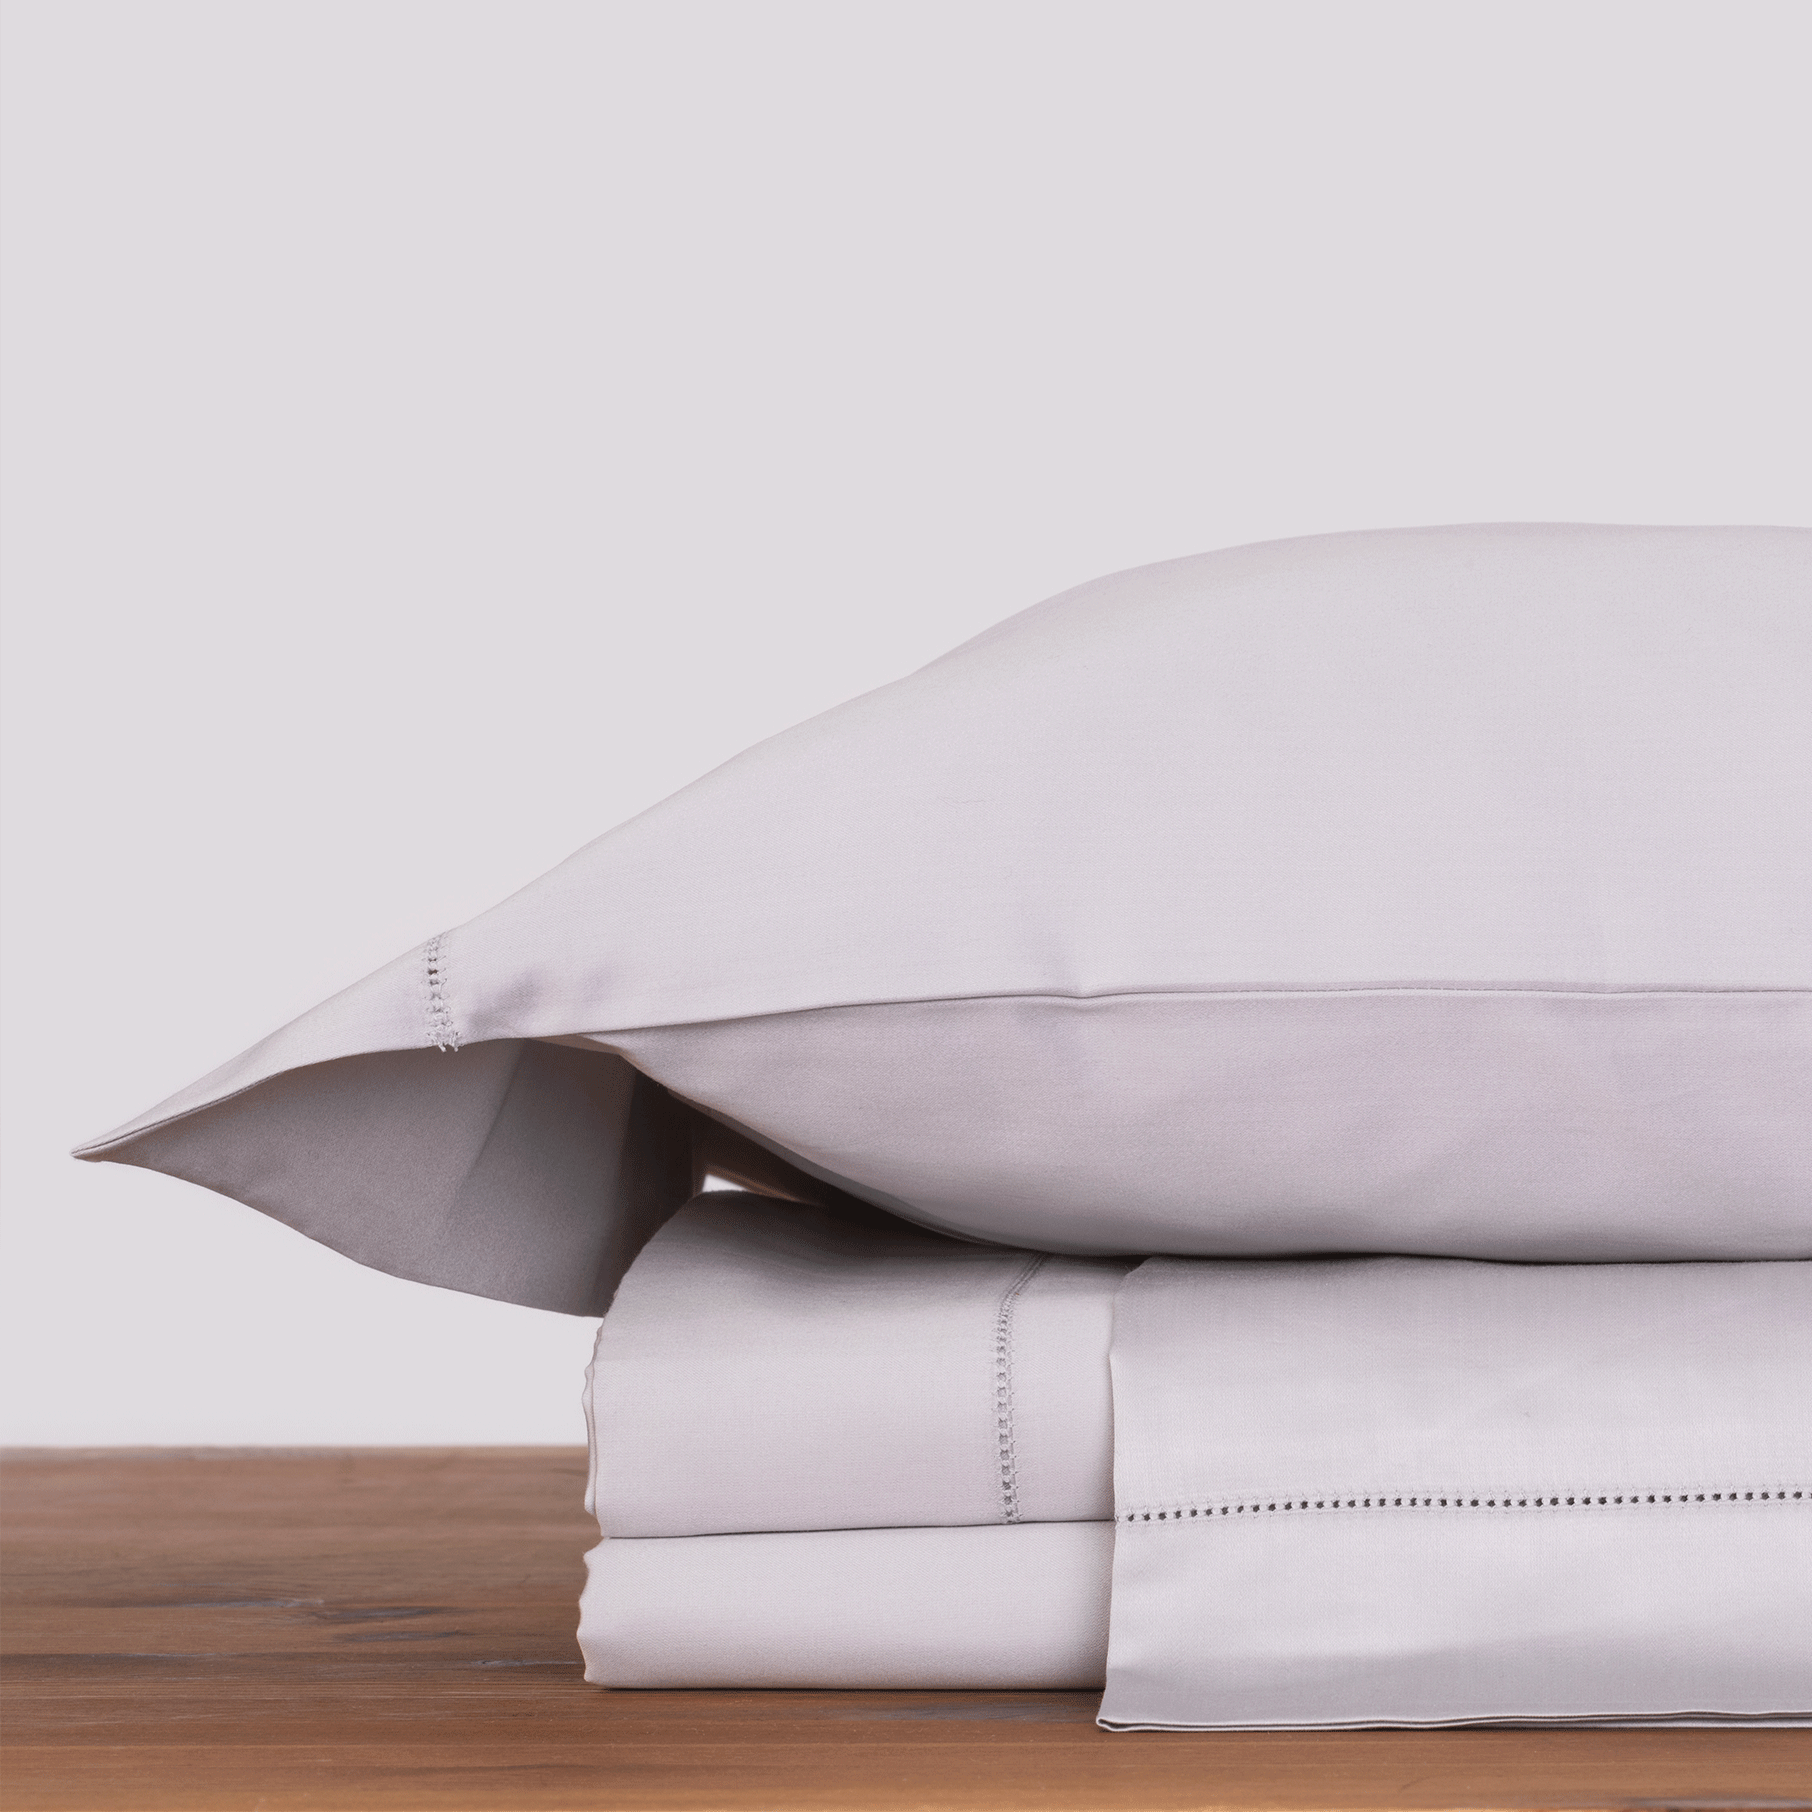 white pillow and folded performance bed sheets from Marialma